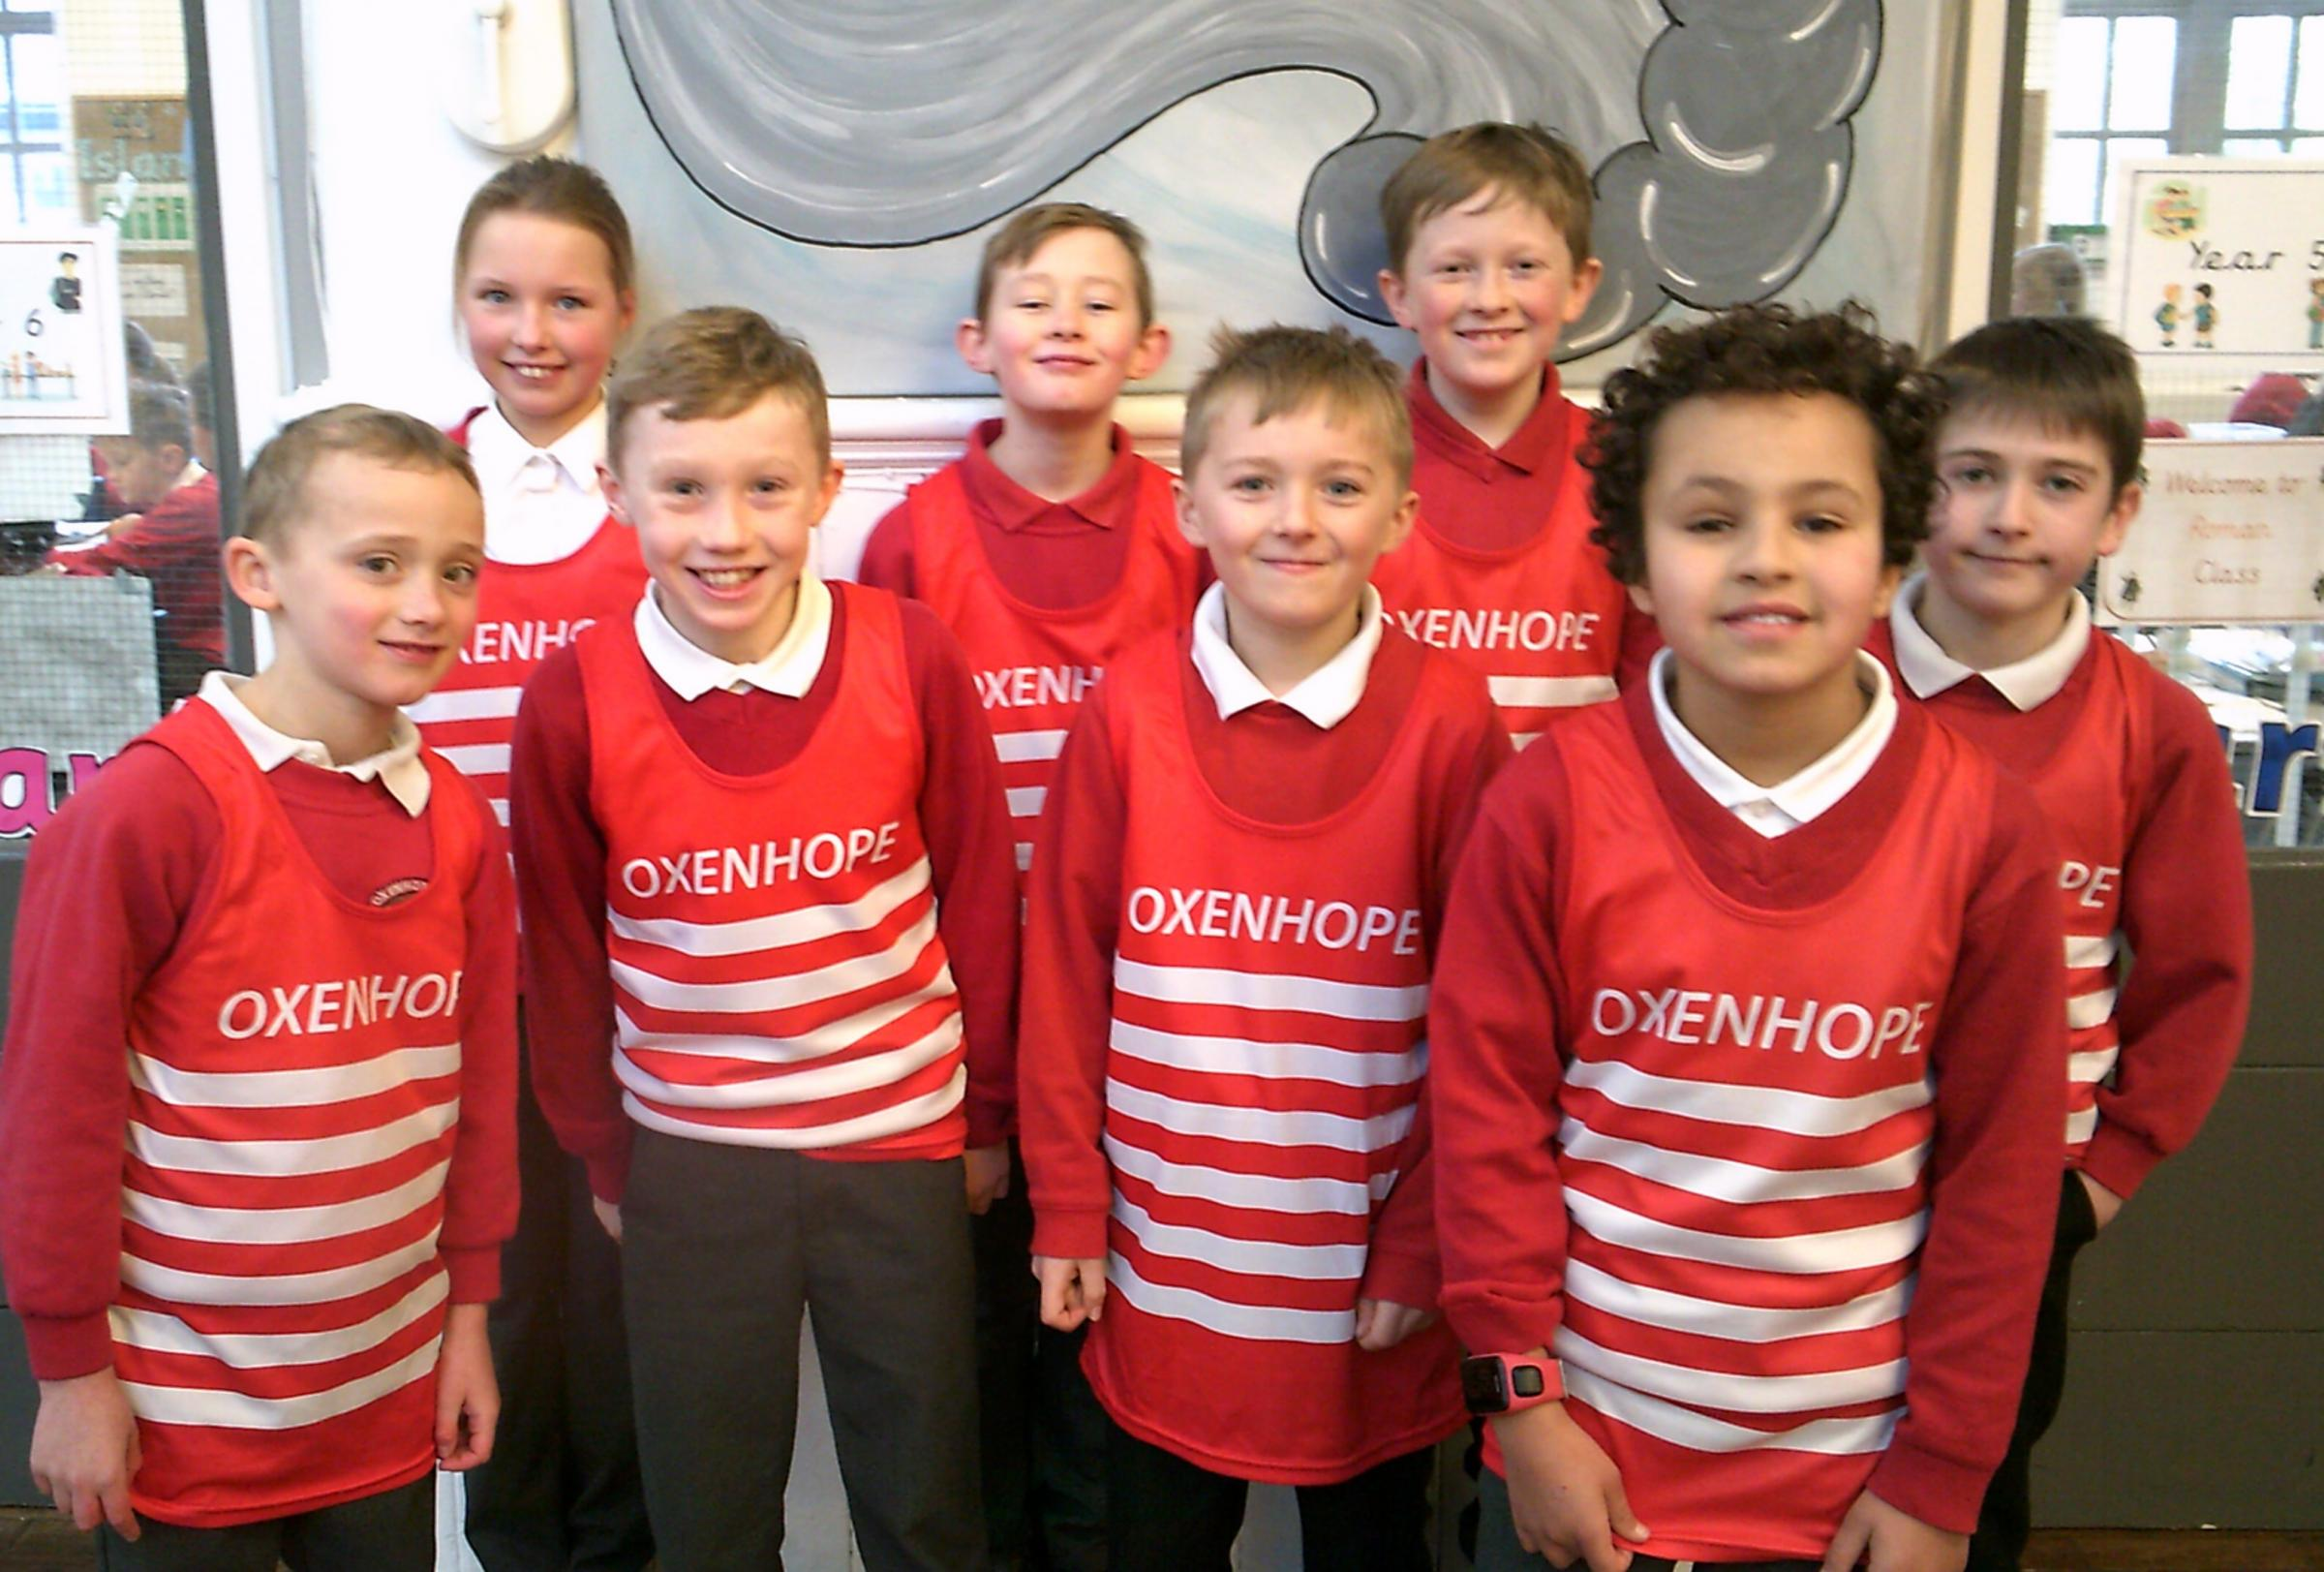 Oxenhope Primary cross country runners, who have made it to the West Yorkshire Schools Finals